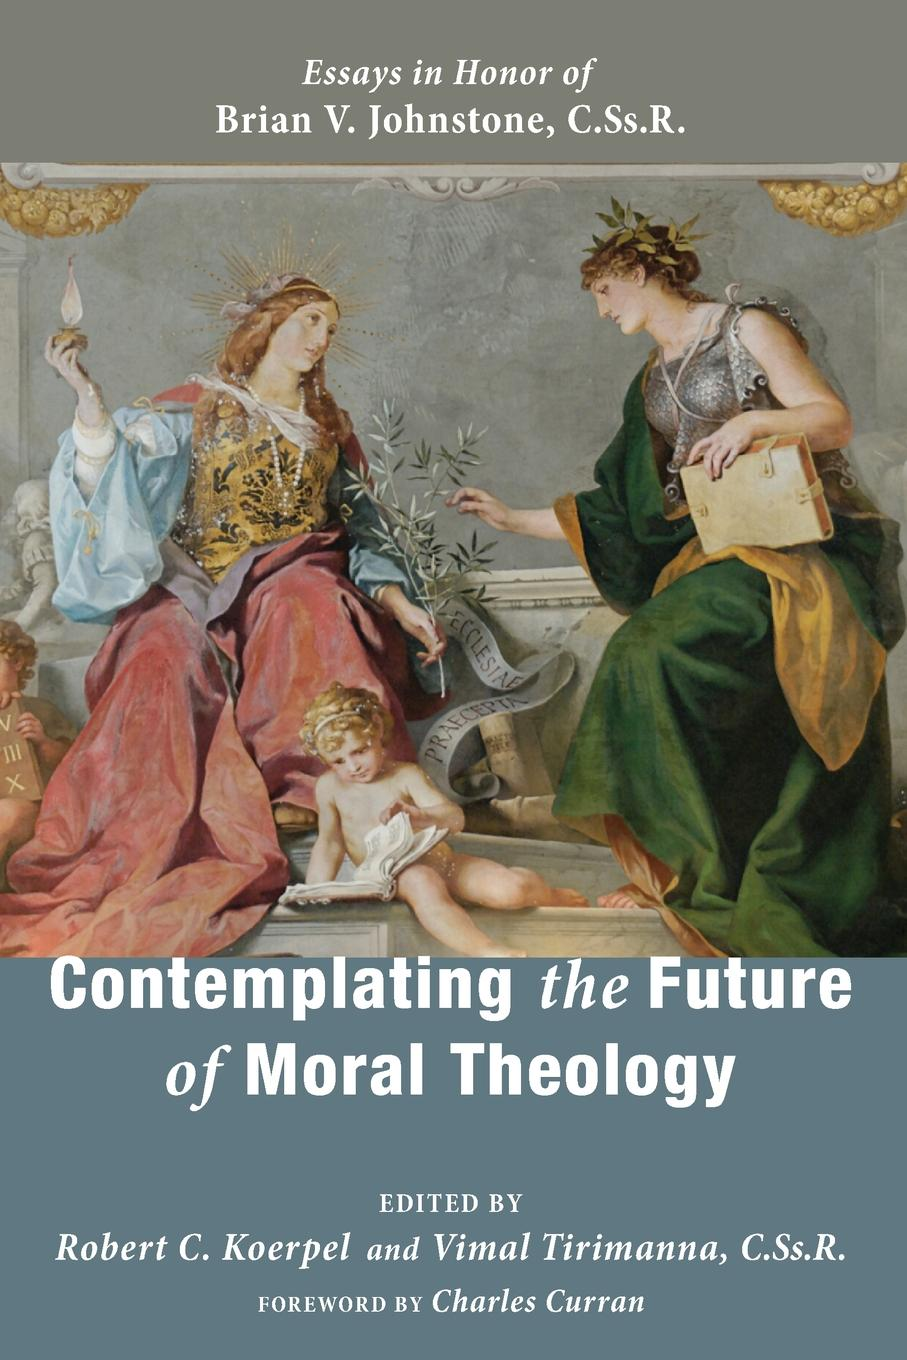 Contemplating the Future of Moral Theology andrew james cochrane johnstone defence of the honourable andrew cochrane johnstone including a view of the